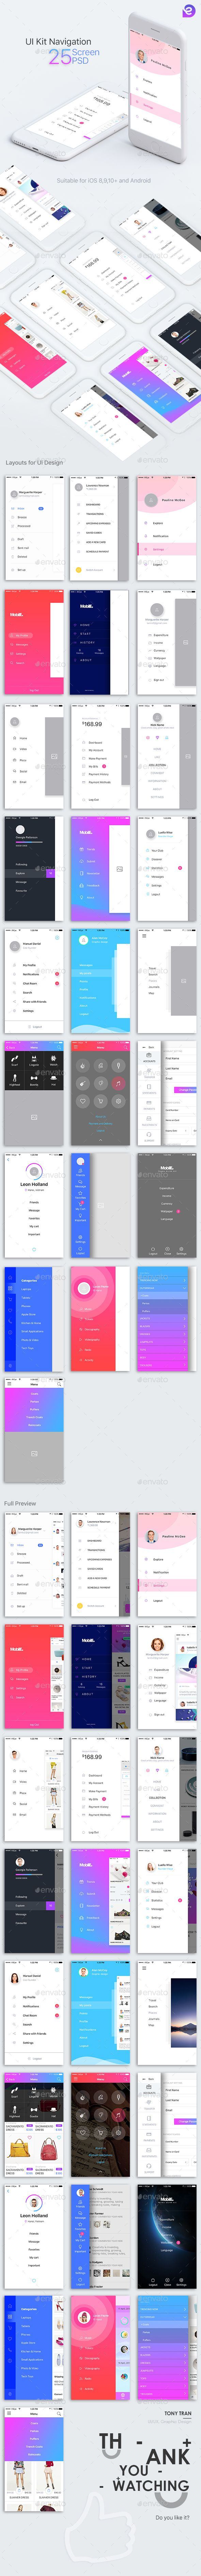 Mobile Theme UI Kit   Navigations - #User Interfaces #Web Elements Download here: https://graphicriver.net/item/mobile-theme-ui-kit-navigations/20010237?ref=alena994